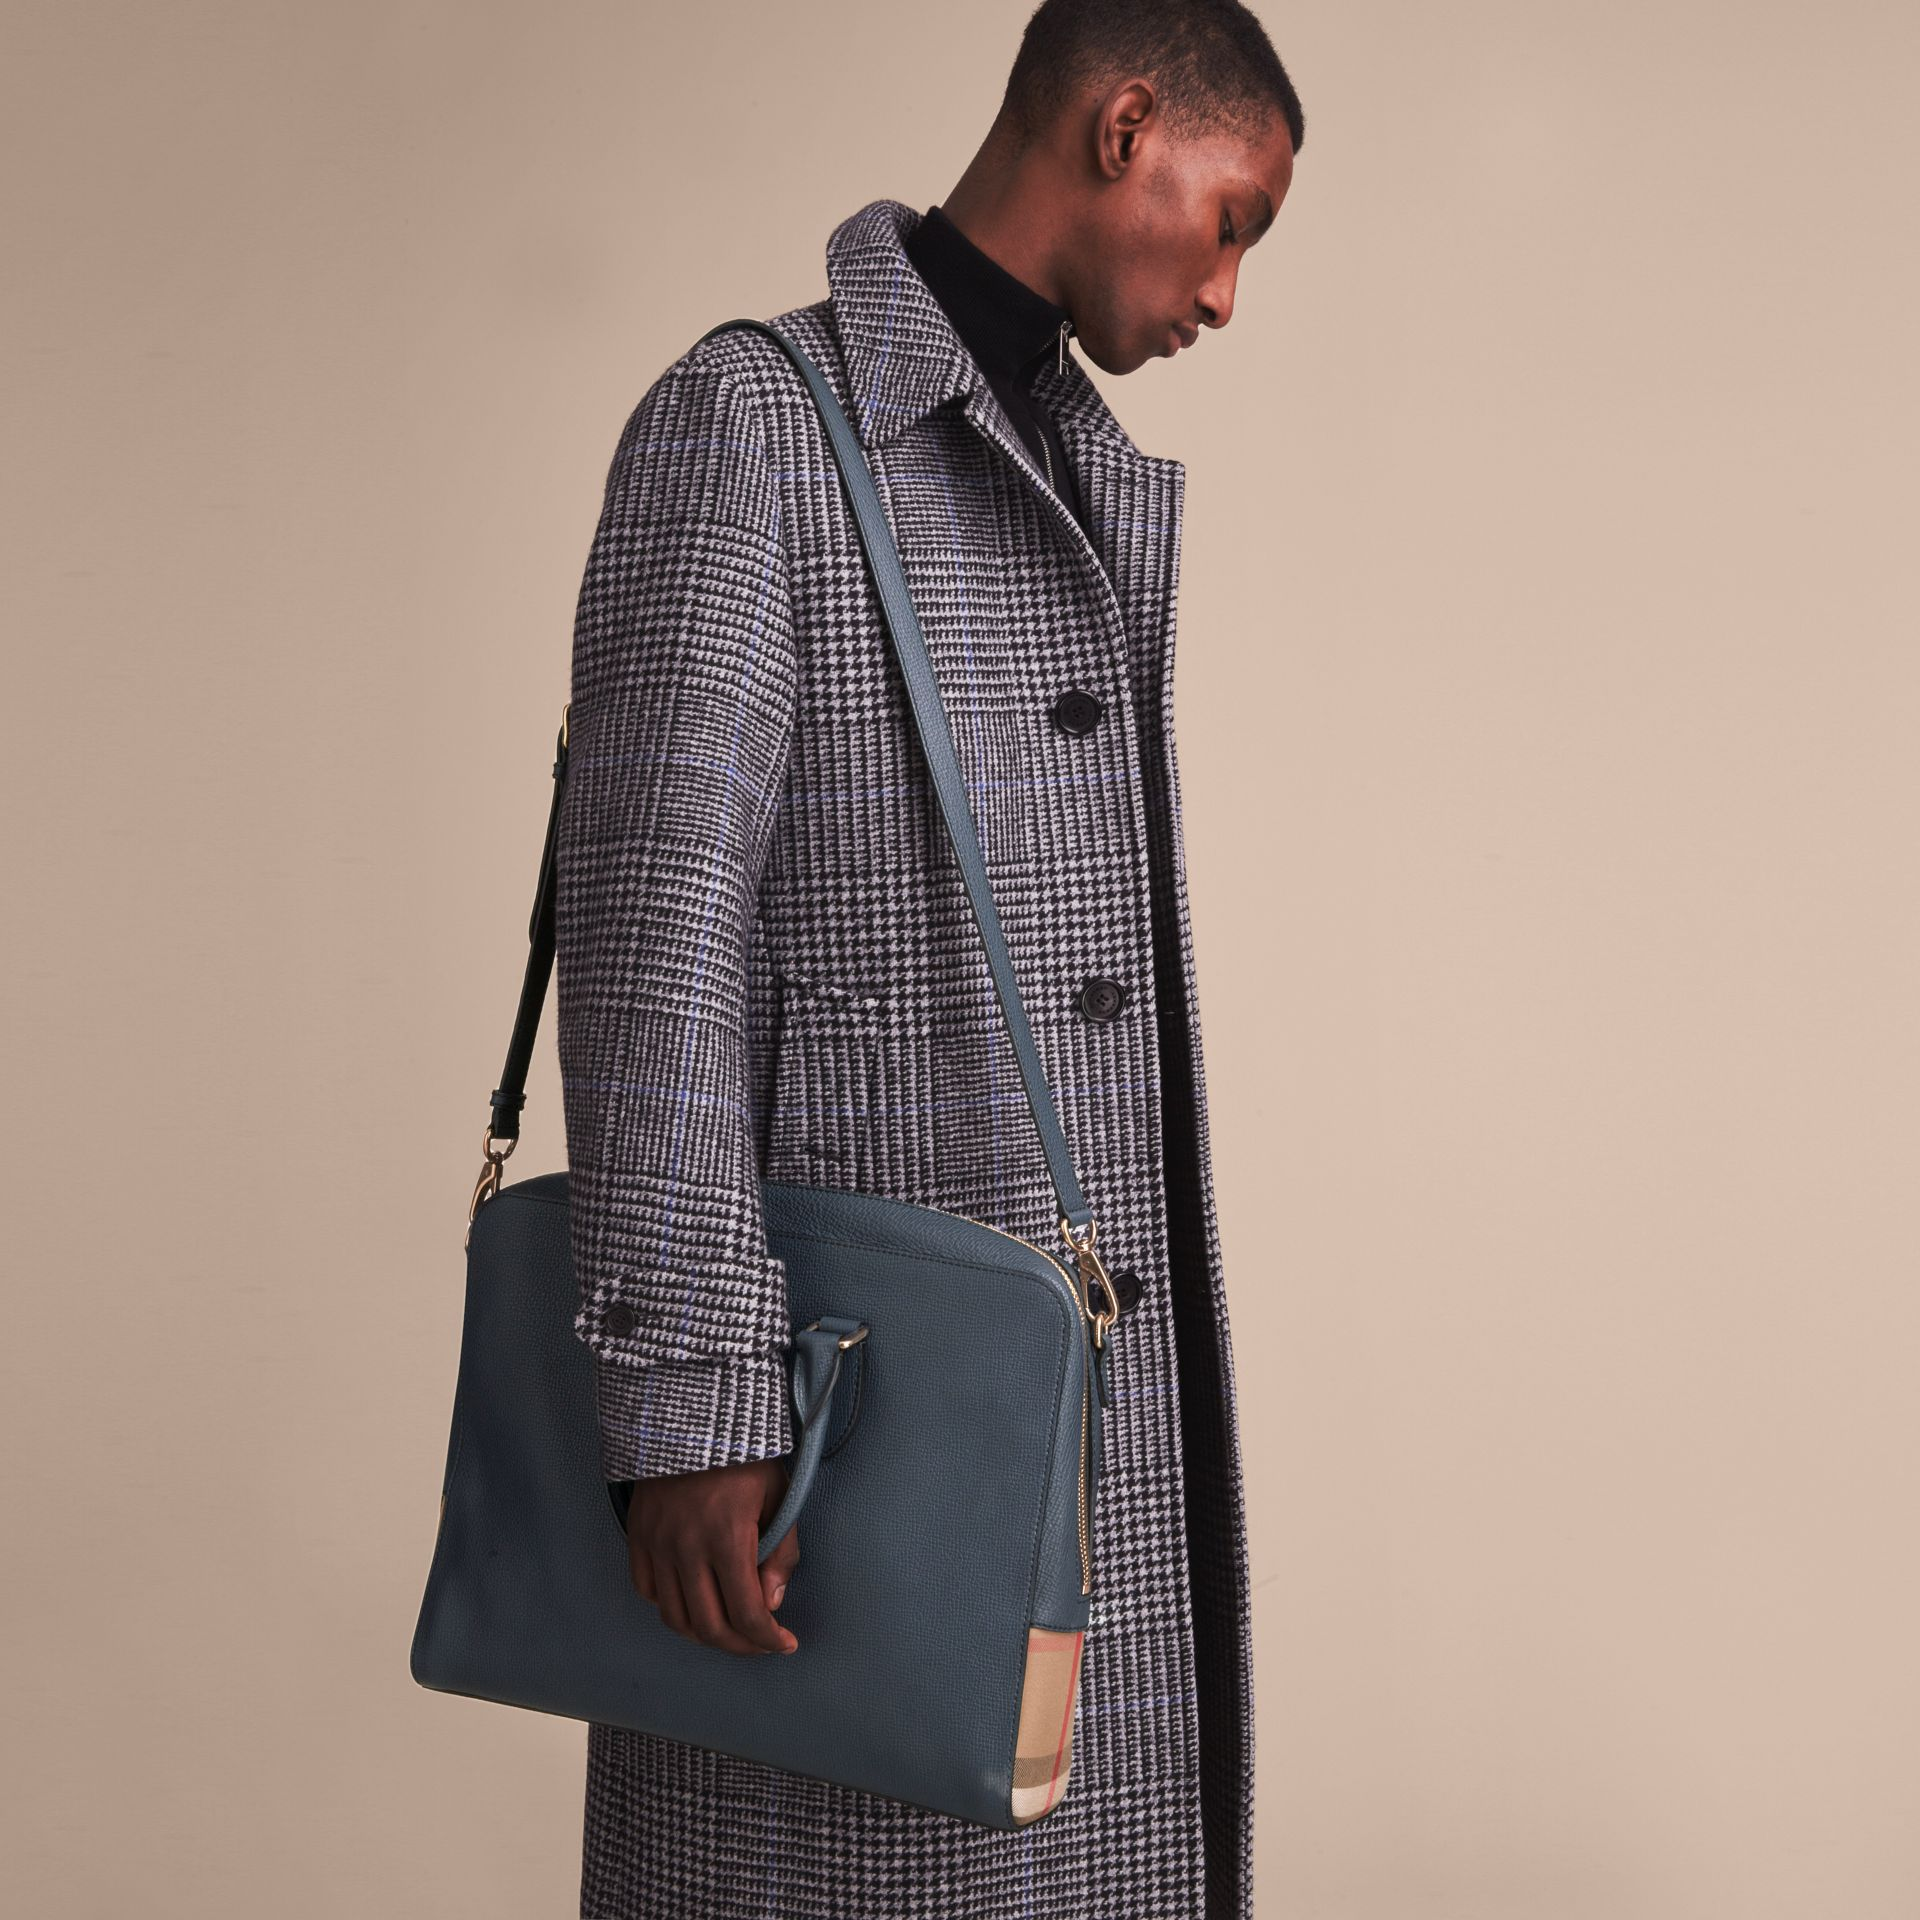 Leather and House Check Briefcase in Storm Blue - Men | Burberry - gallery image 4